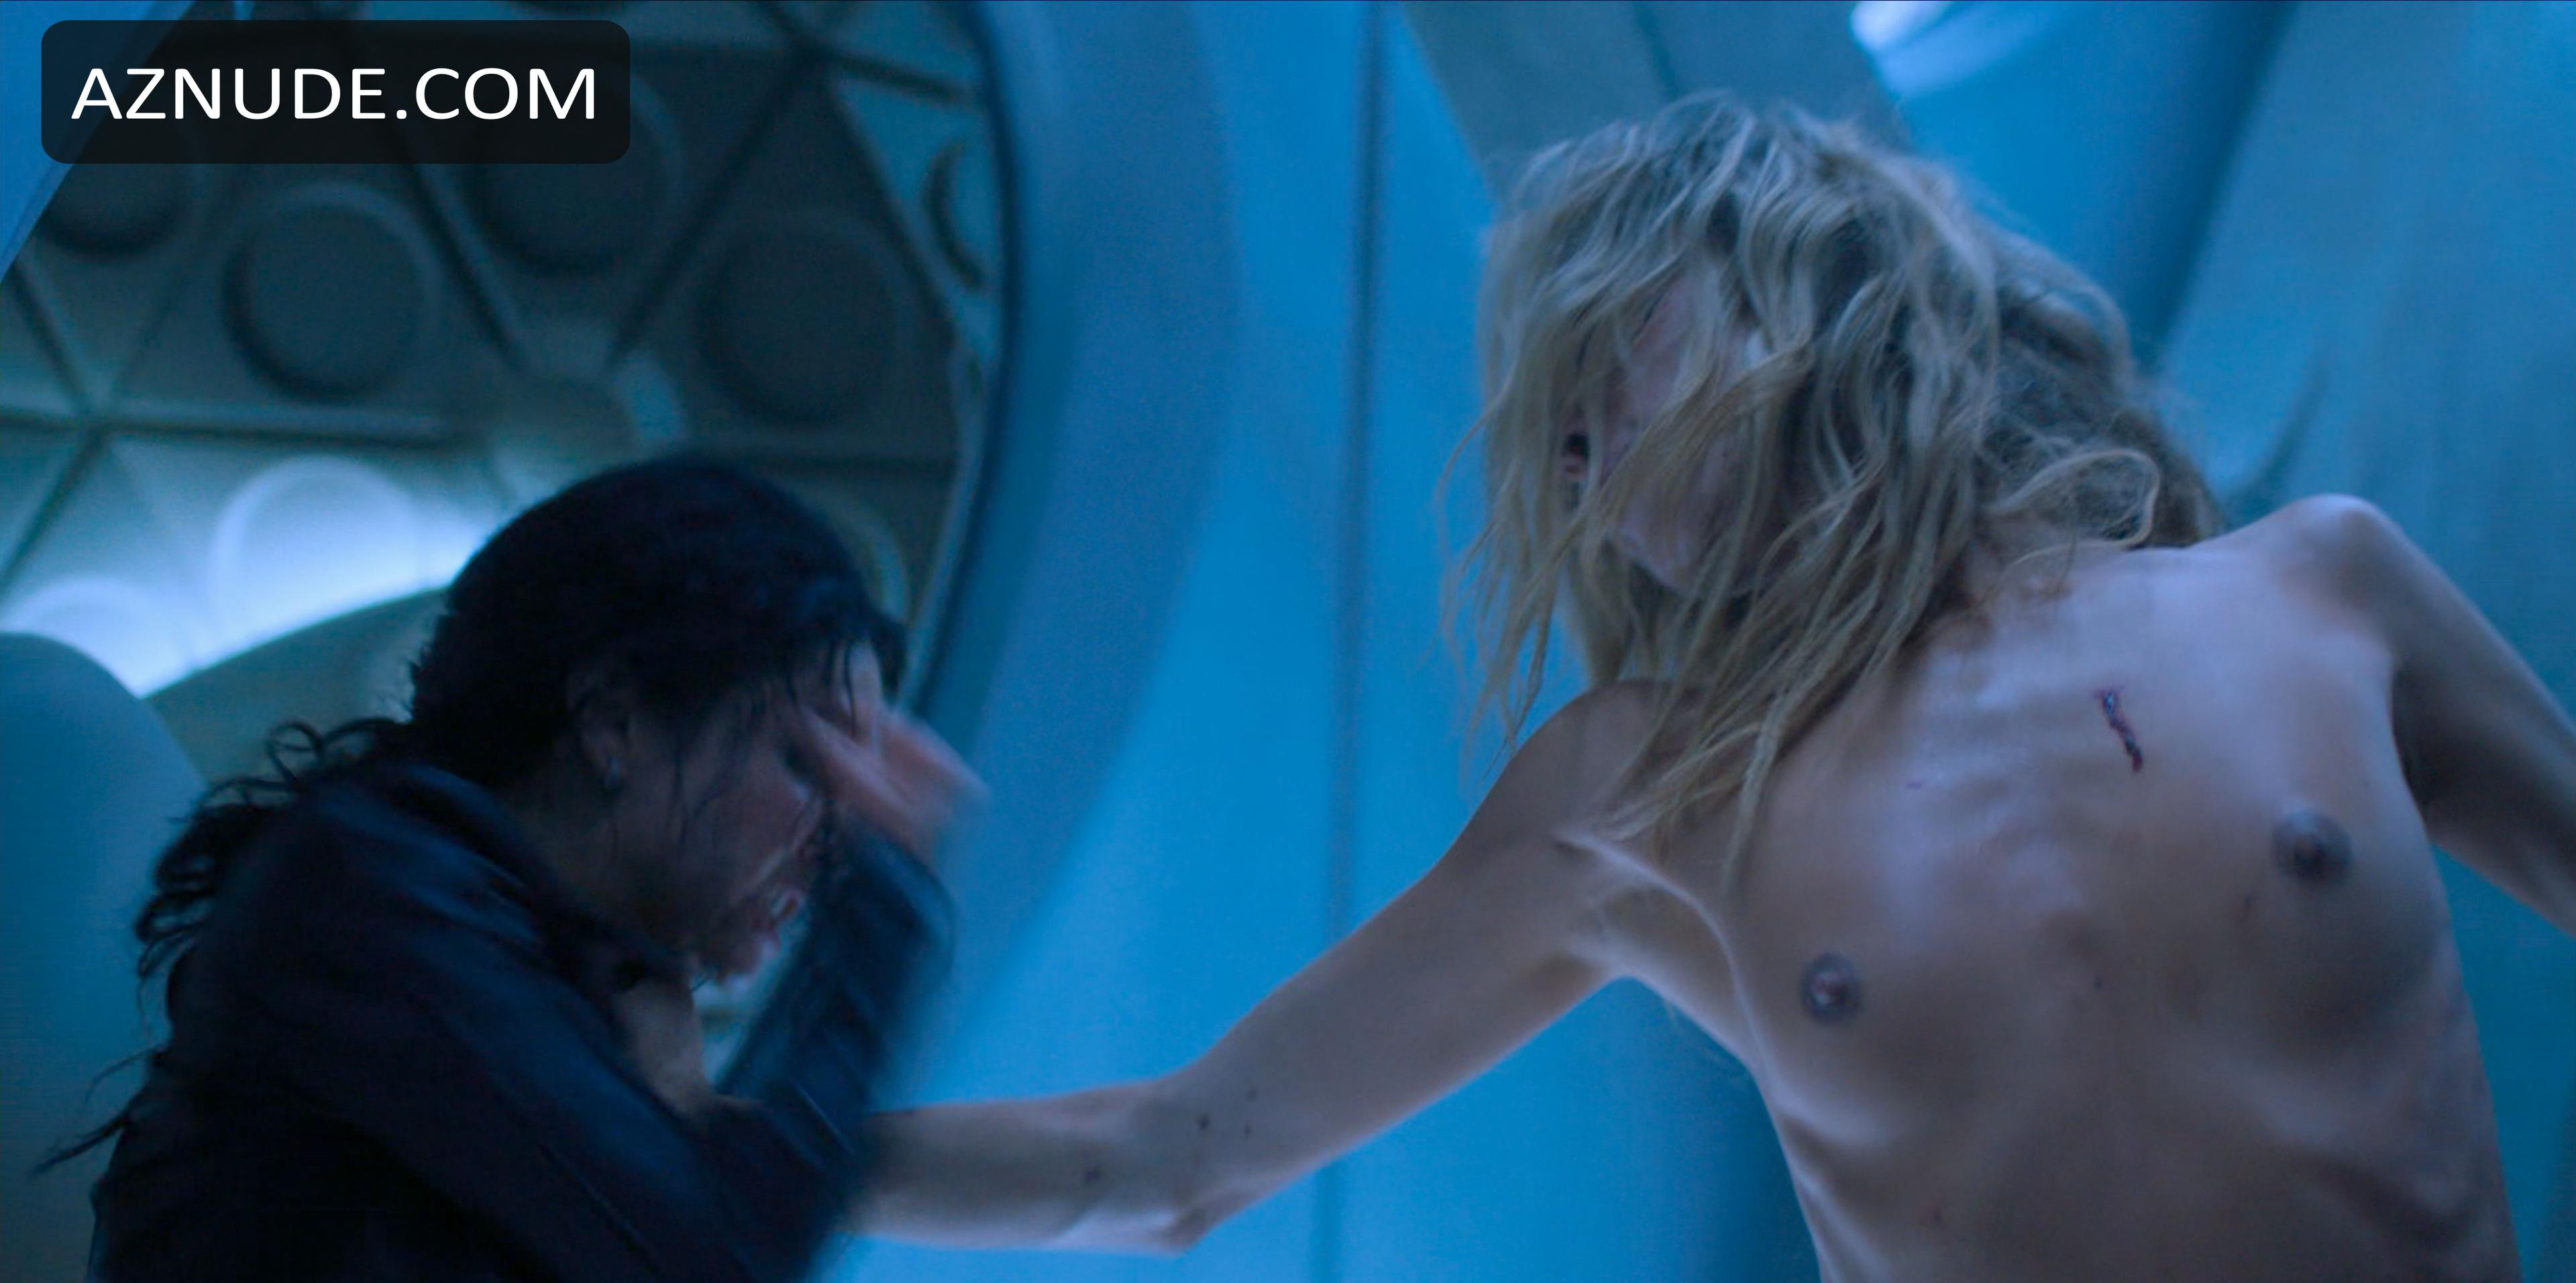 Naked lachman 'Altered Carbon'